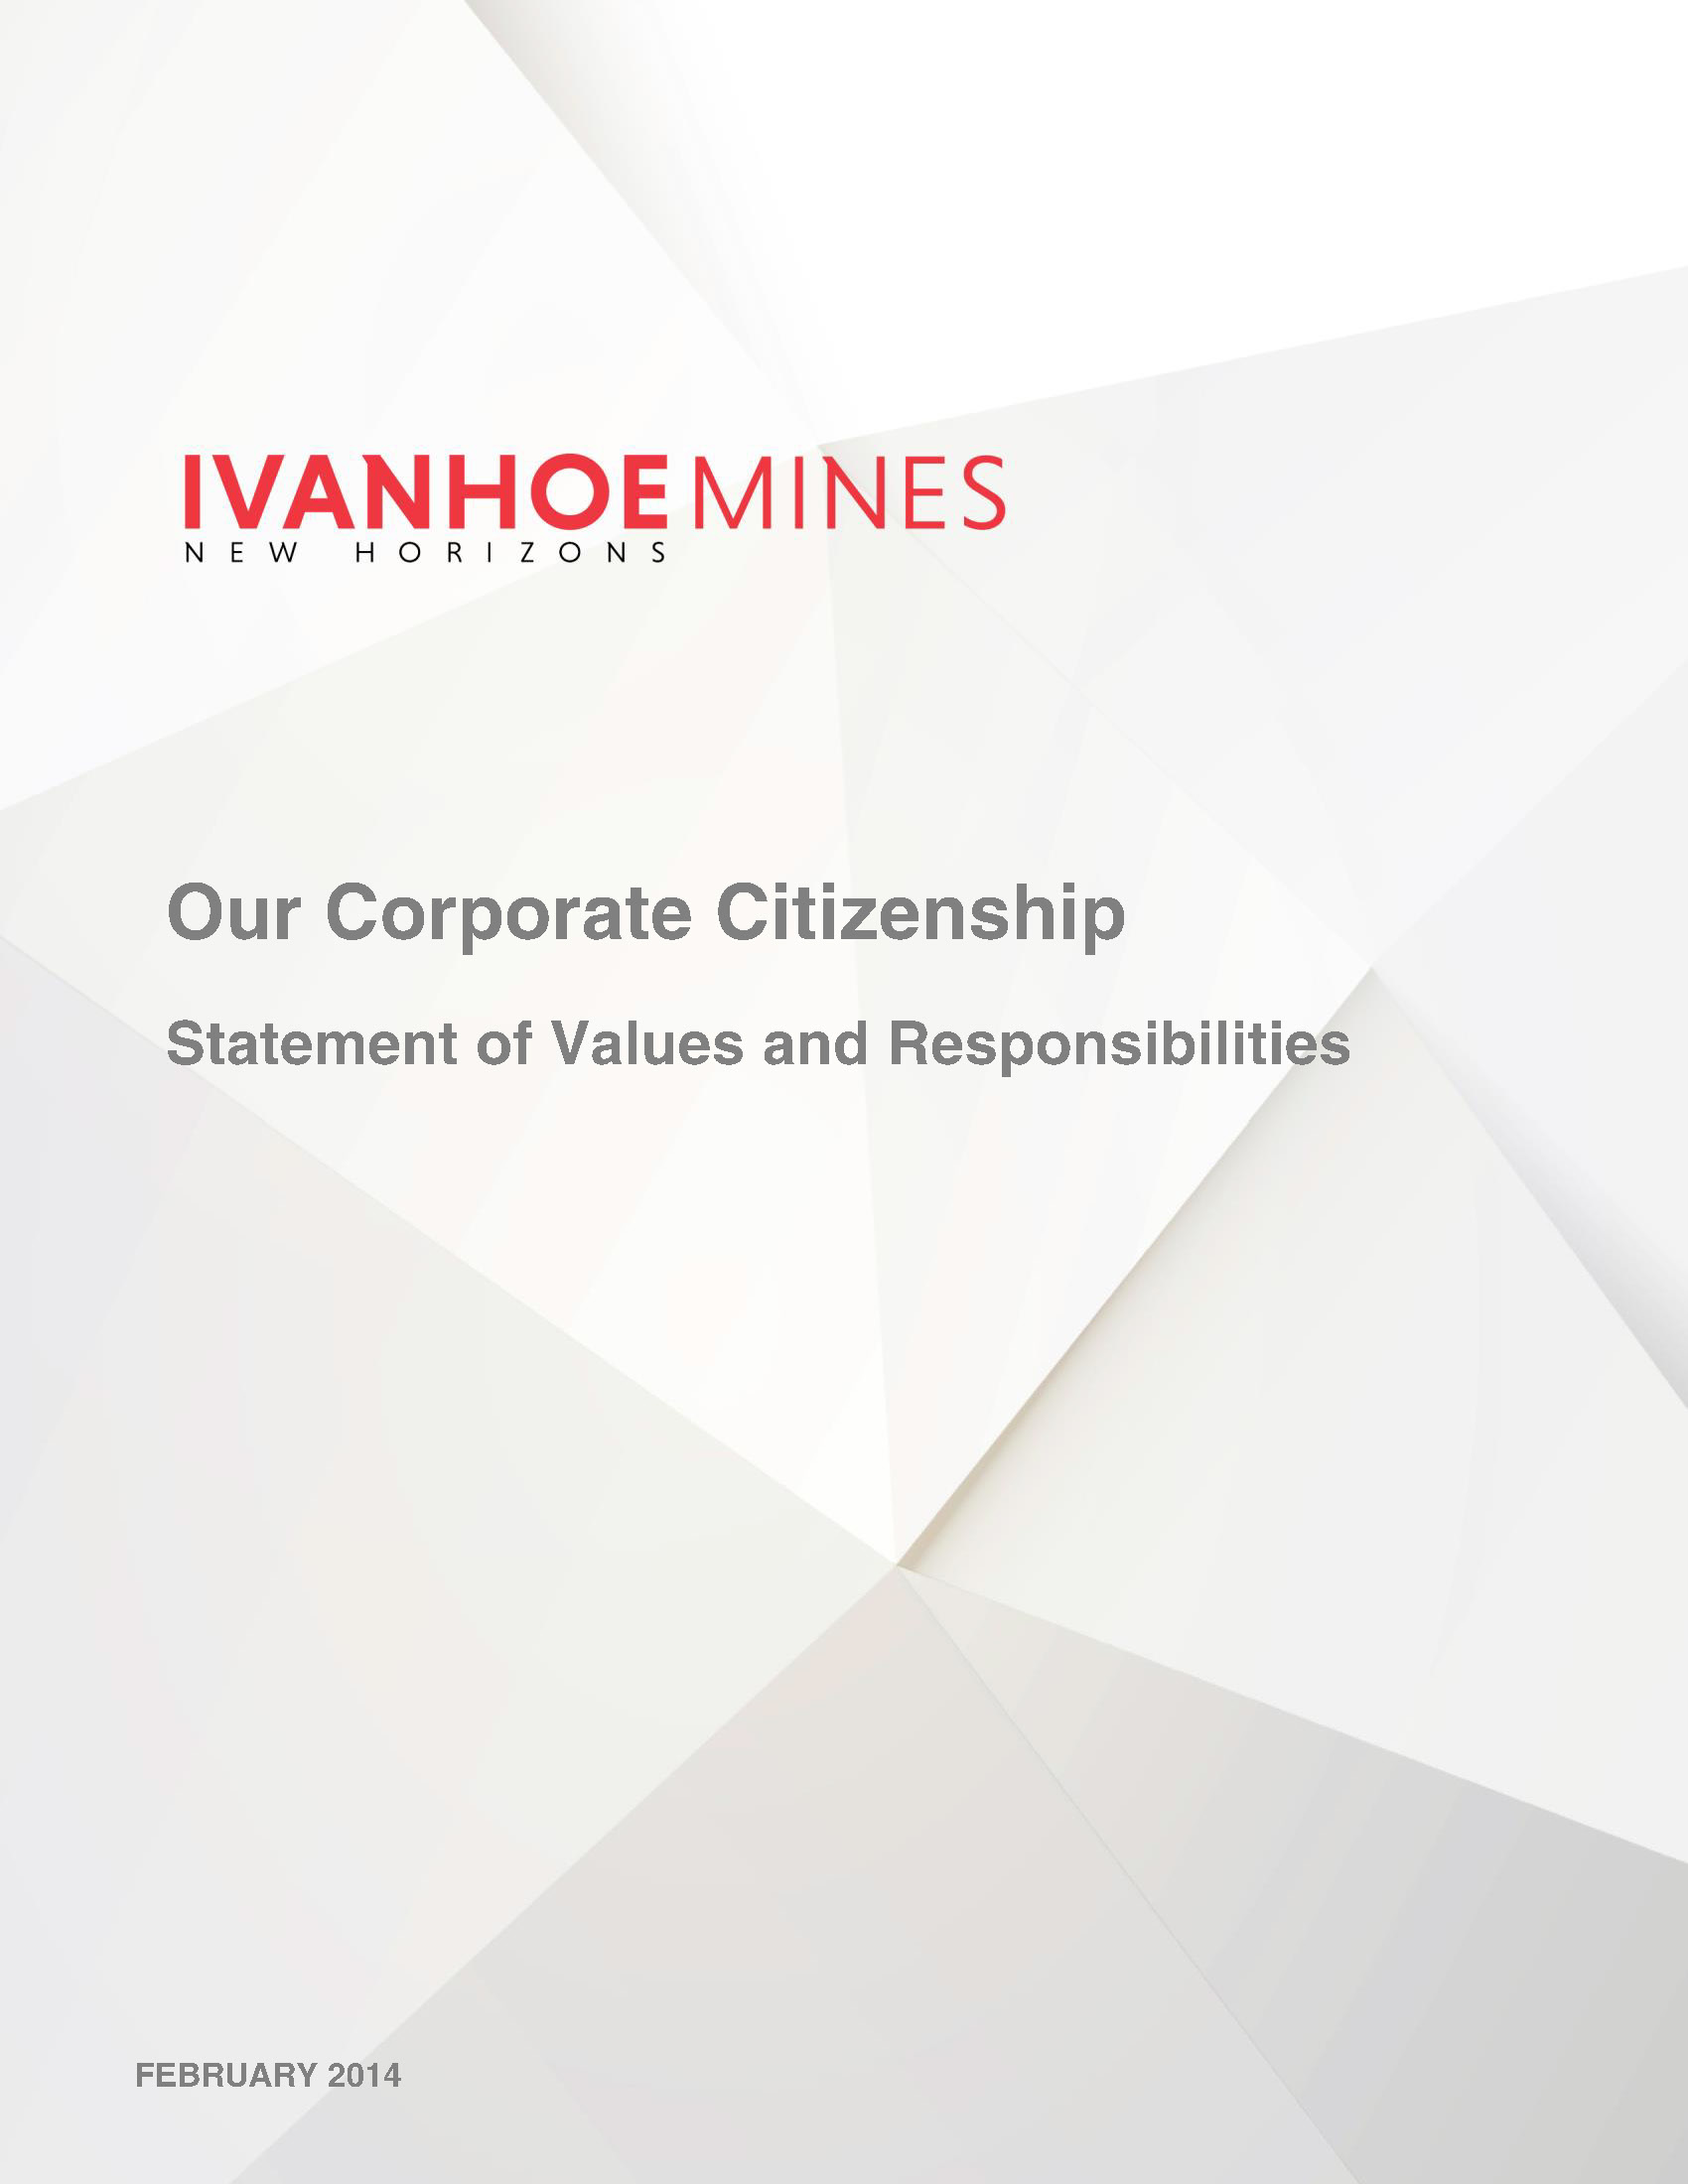 Statement of Values and Responsibilities